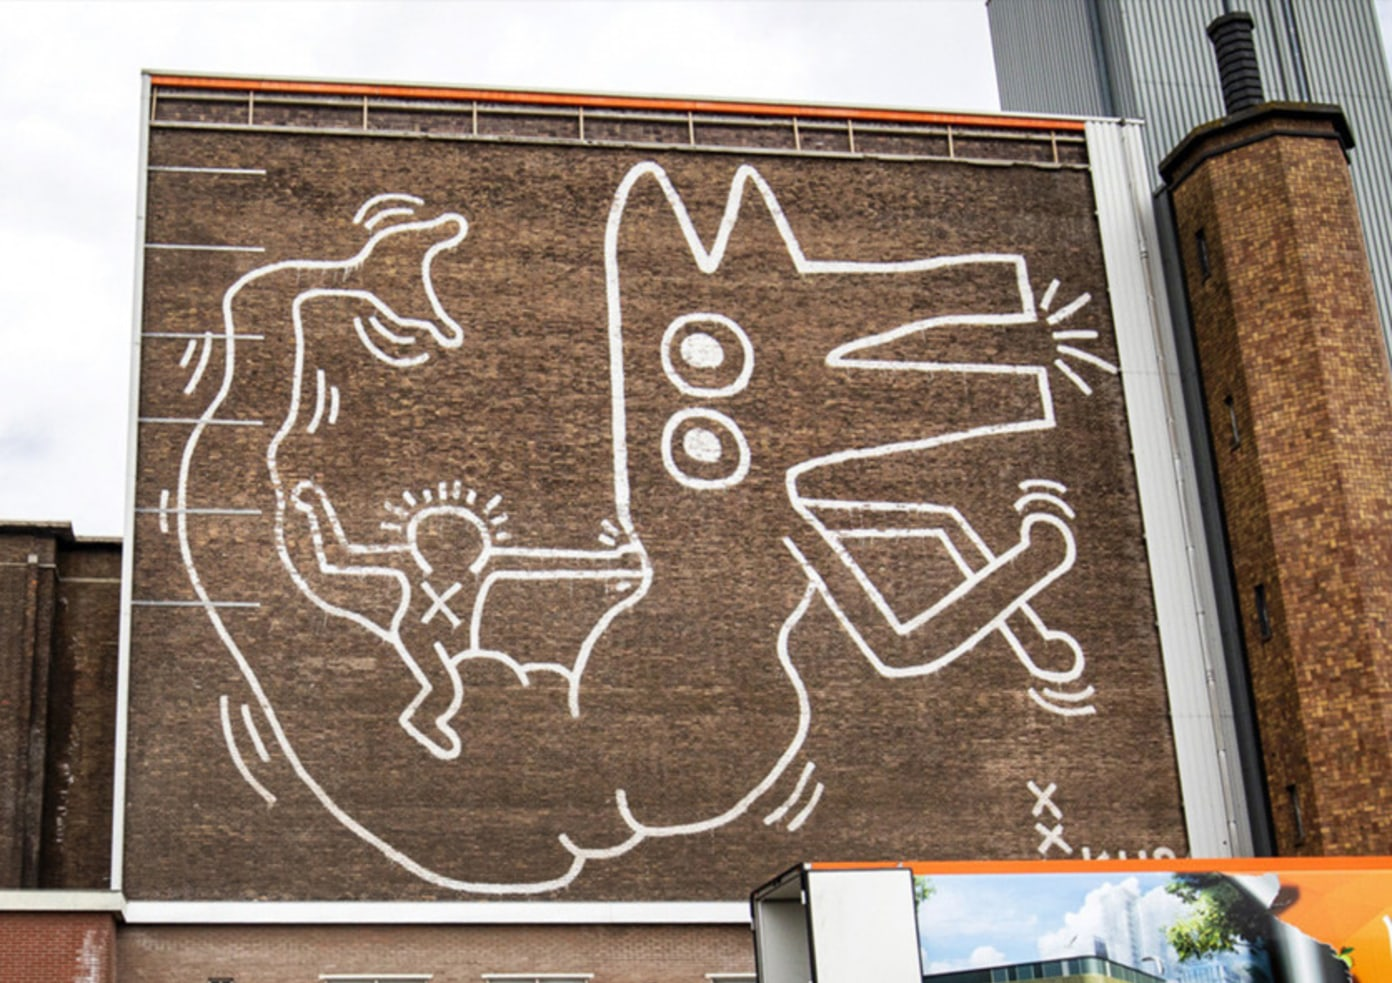 30-Year Old Keith Haring Mural Uncovered